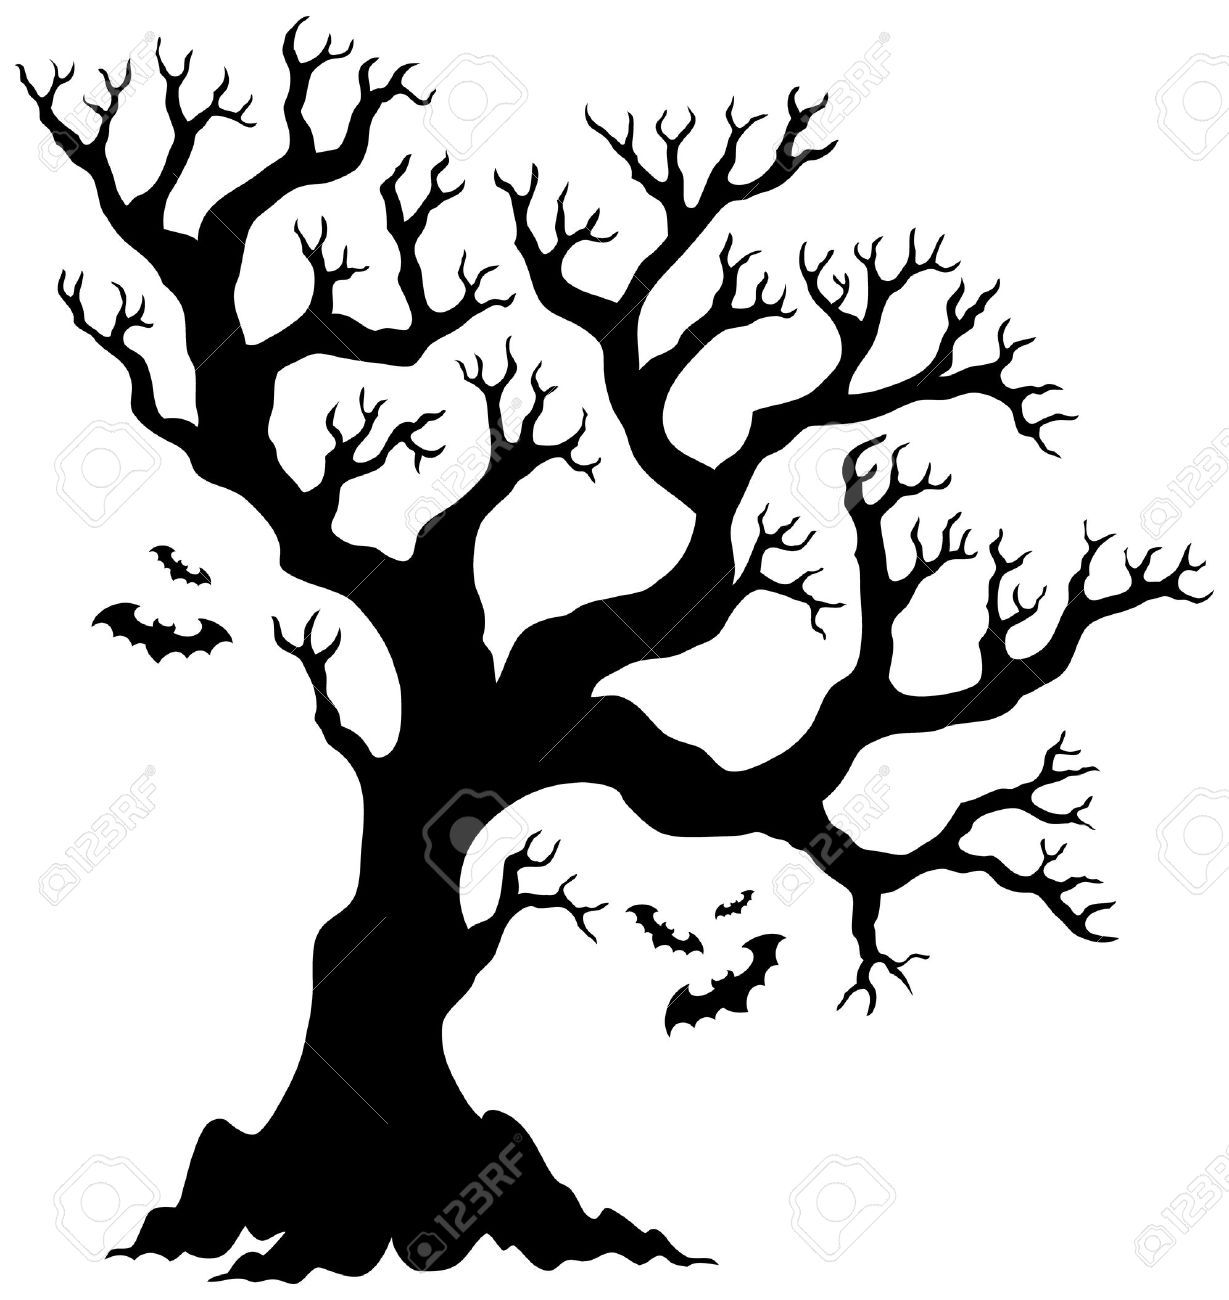 hight resolution of silhouette halloween tree with bats royalty free cliparts vectors